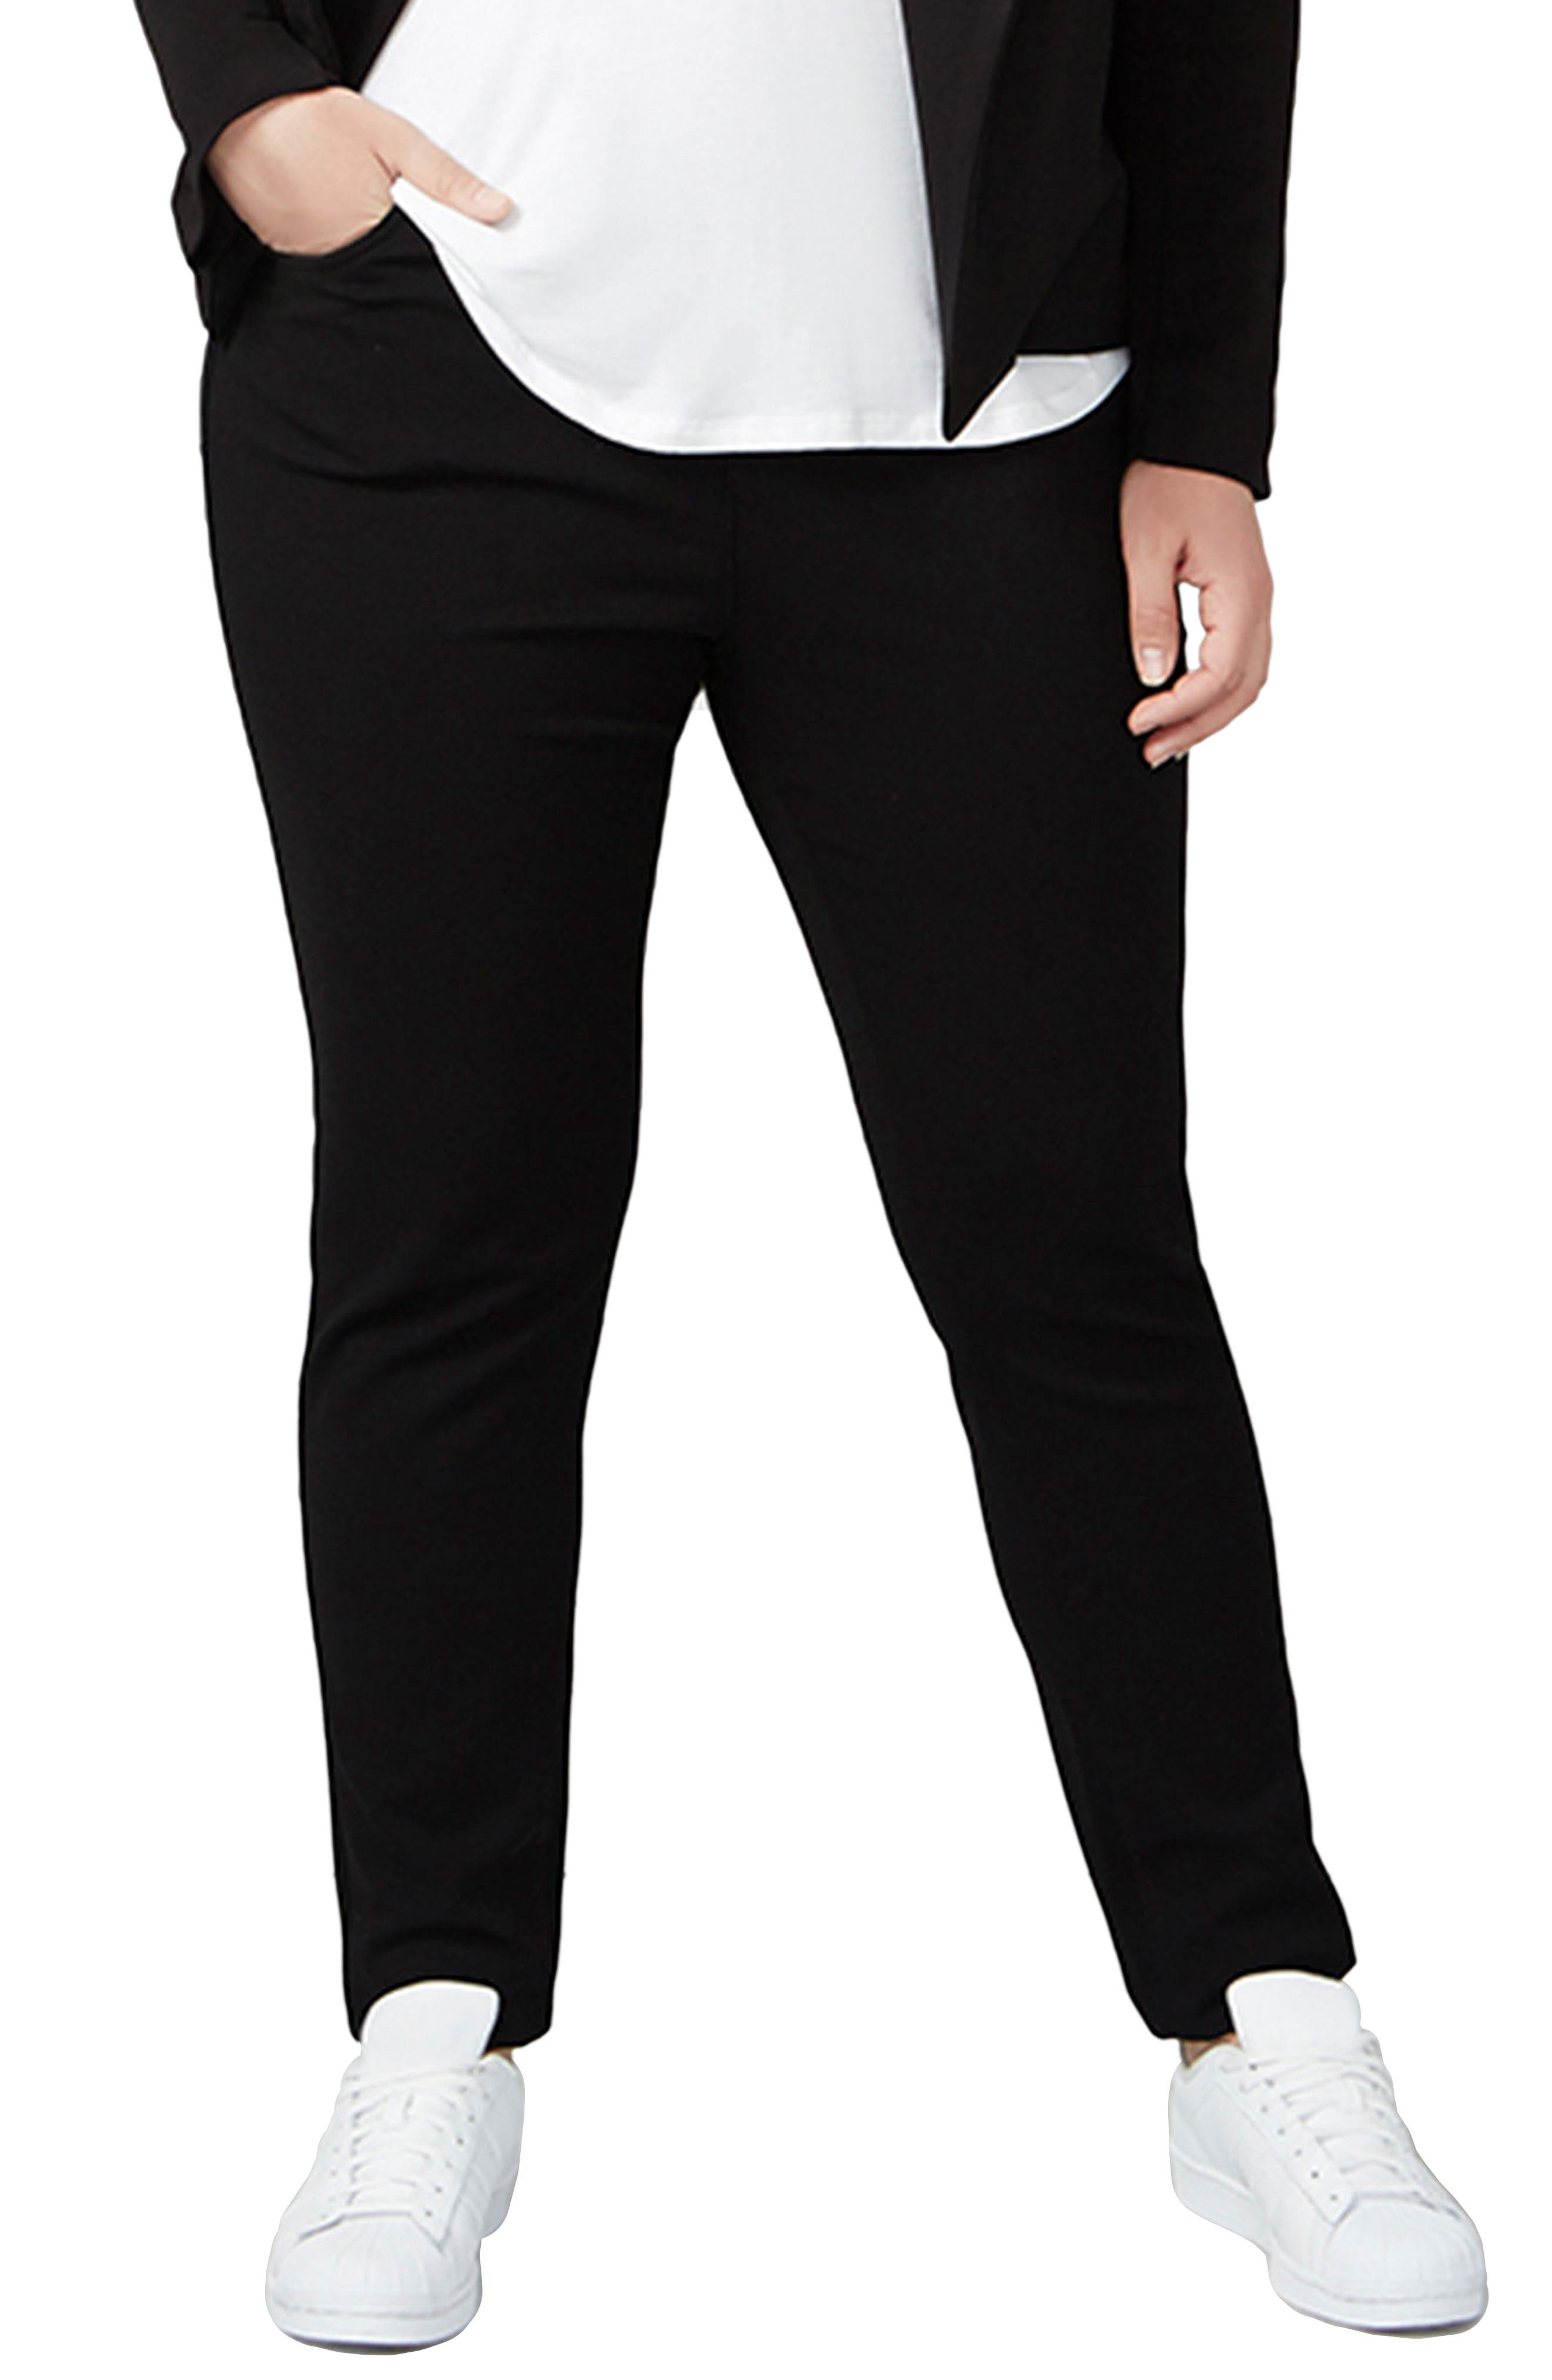 Ponte Knit Pants,                             Main thumbnail 1, color,                             Black